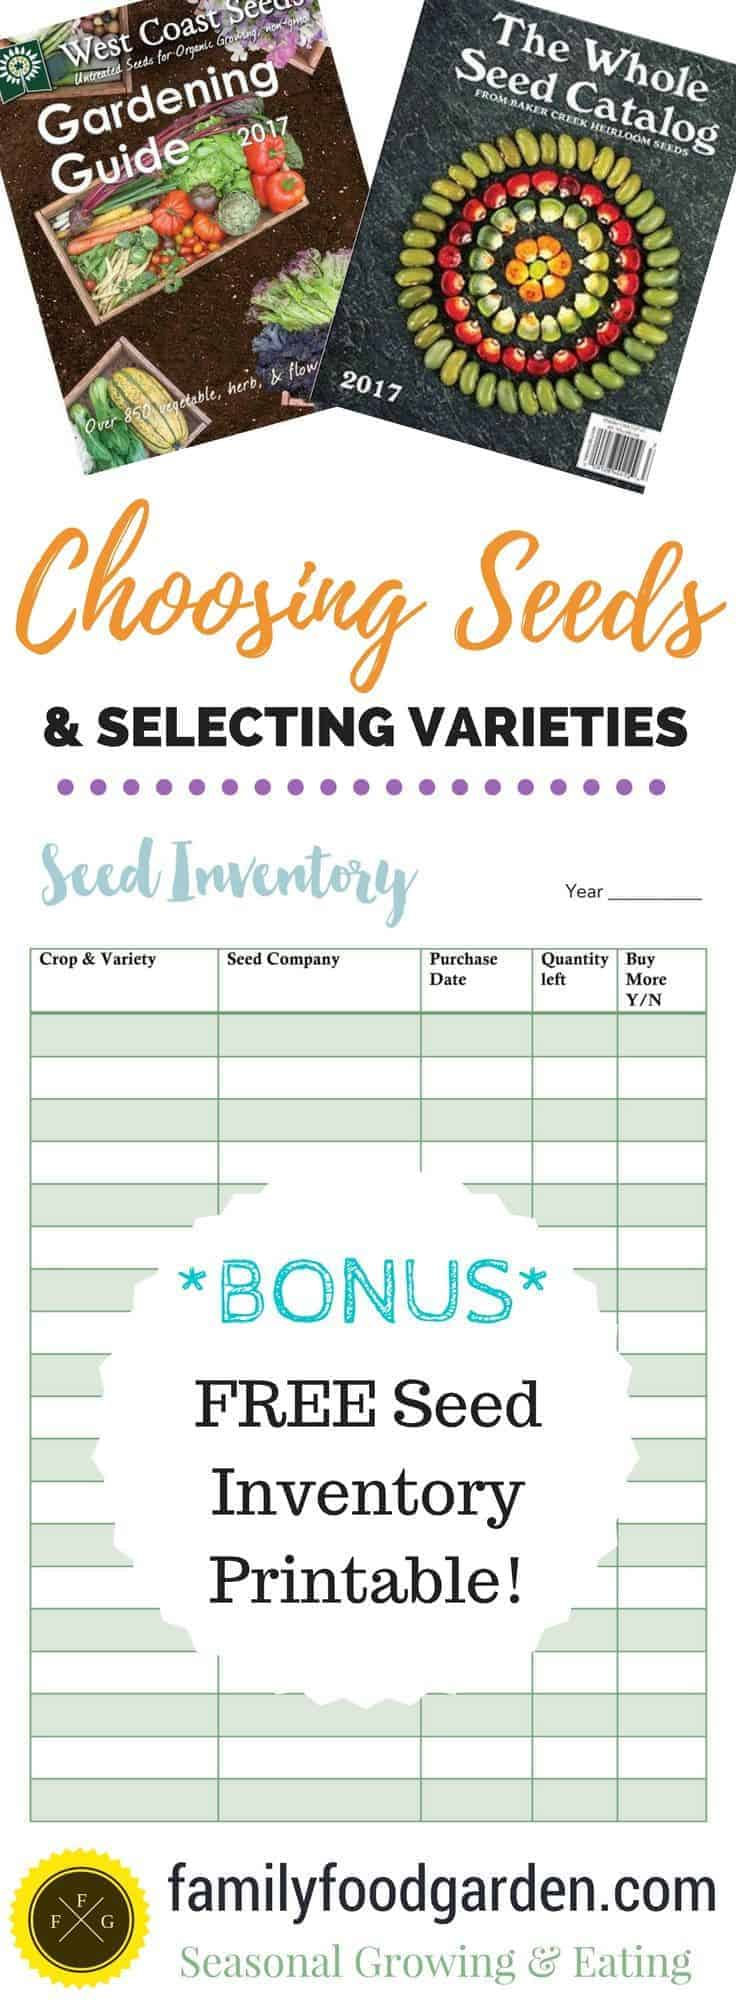 Garden Planning: Choosing Your Seeds & Taking Seed Inventory